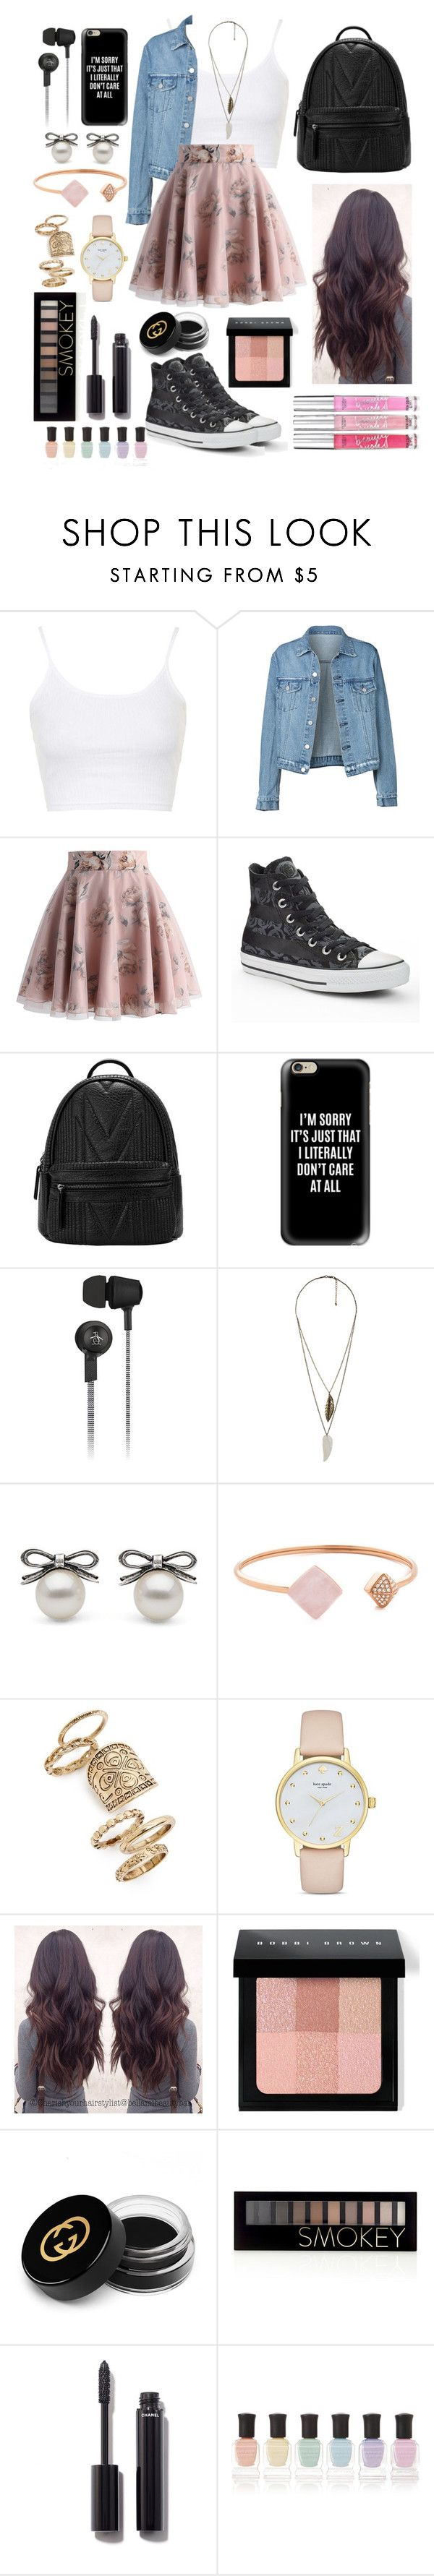 """""""Skater School Girl"""" by siamesecat-1 ❤ liked on Polyvore featuring Topshop, Chicwish, Converse, Casetify, Original Penguin, Forever 21, Michael Kors, Kate Spade, Bobbi Brown Cosmetics and Gucci"""